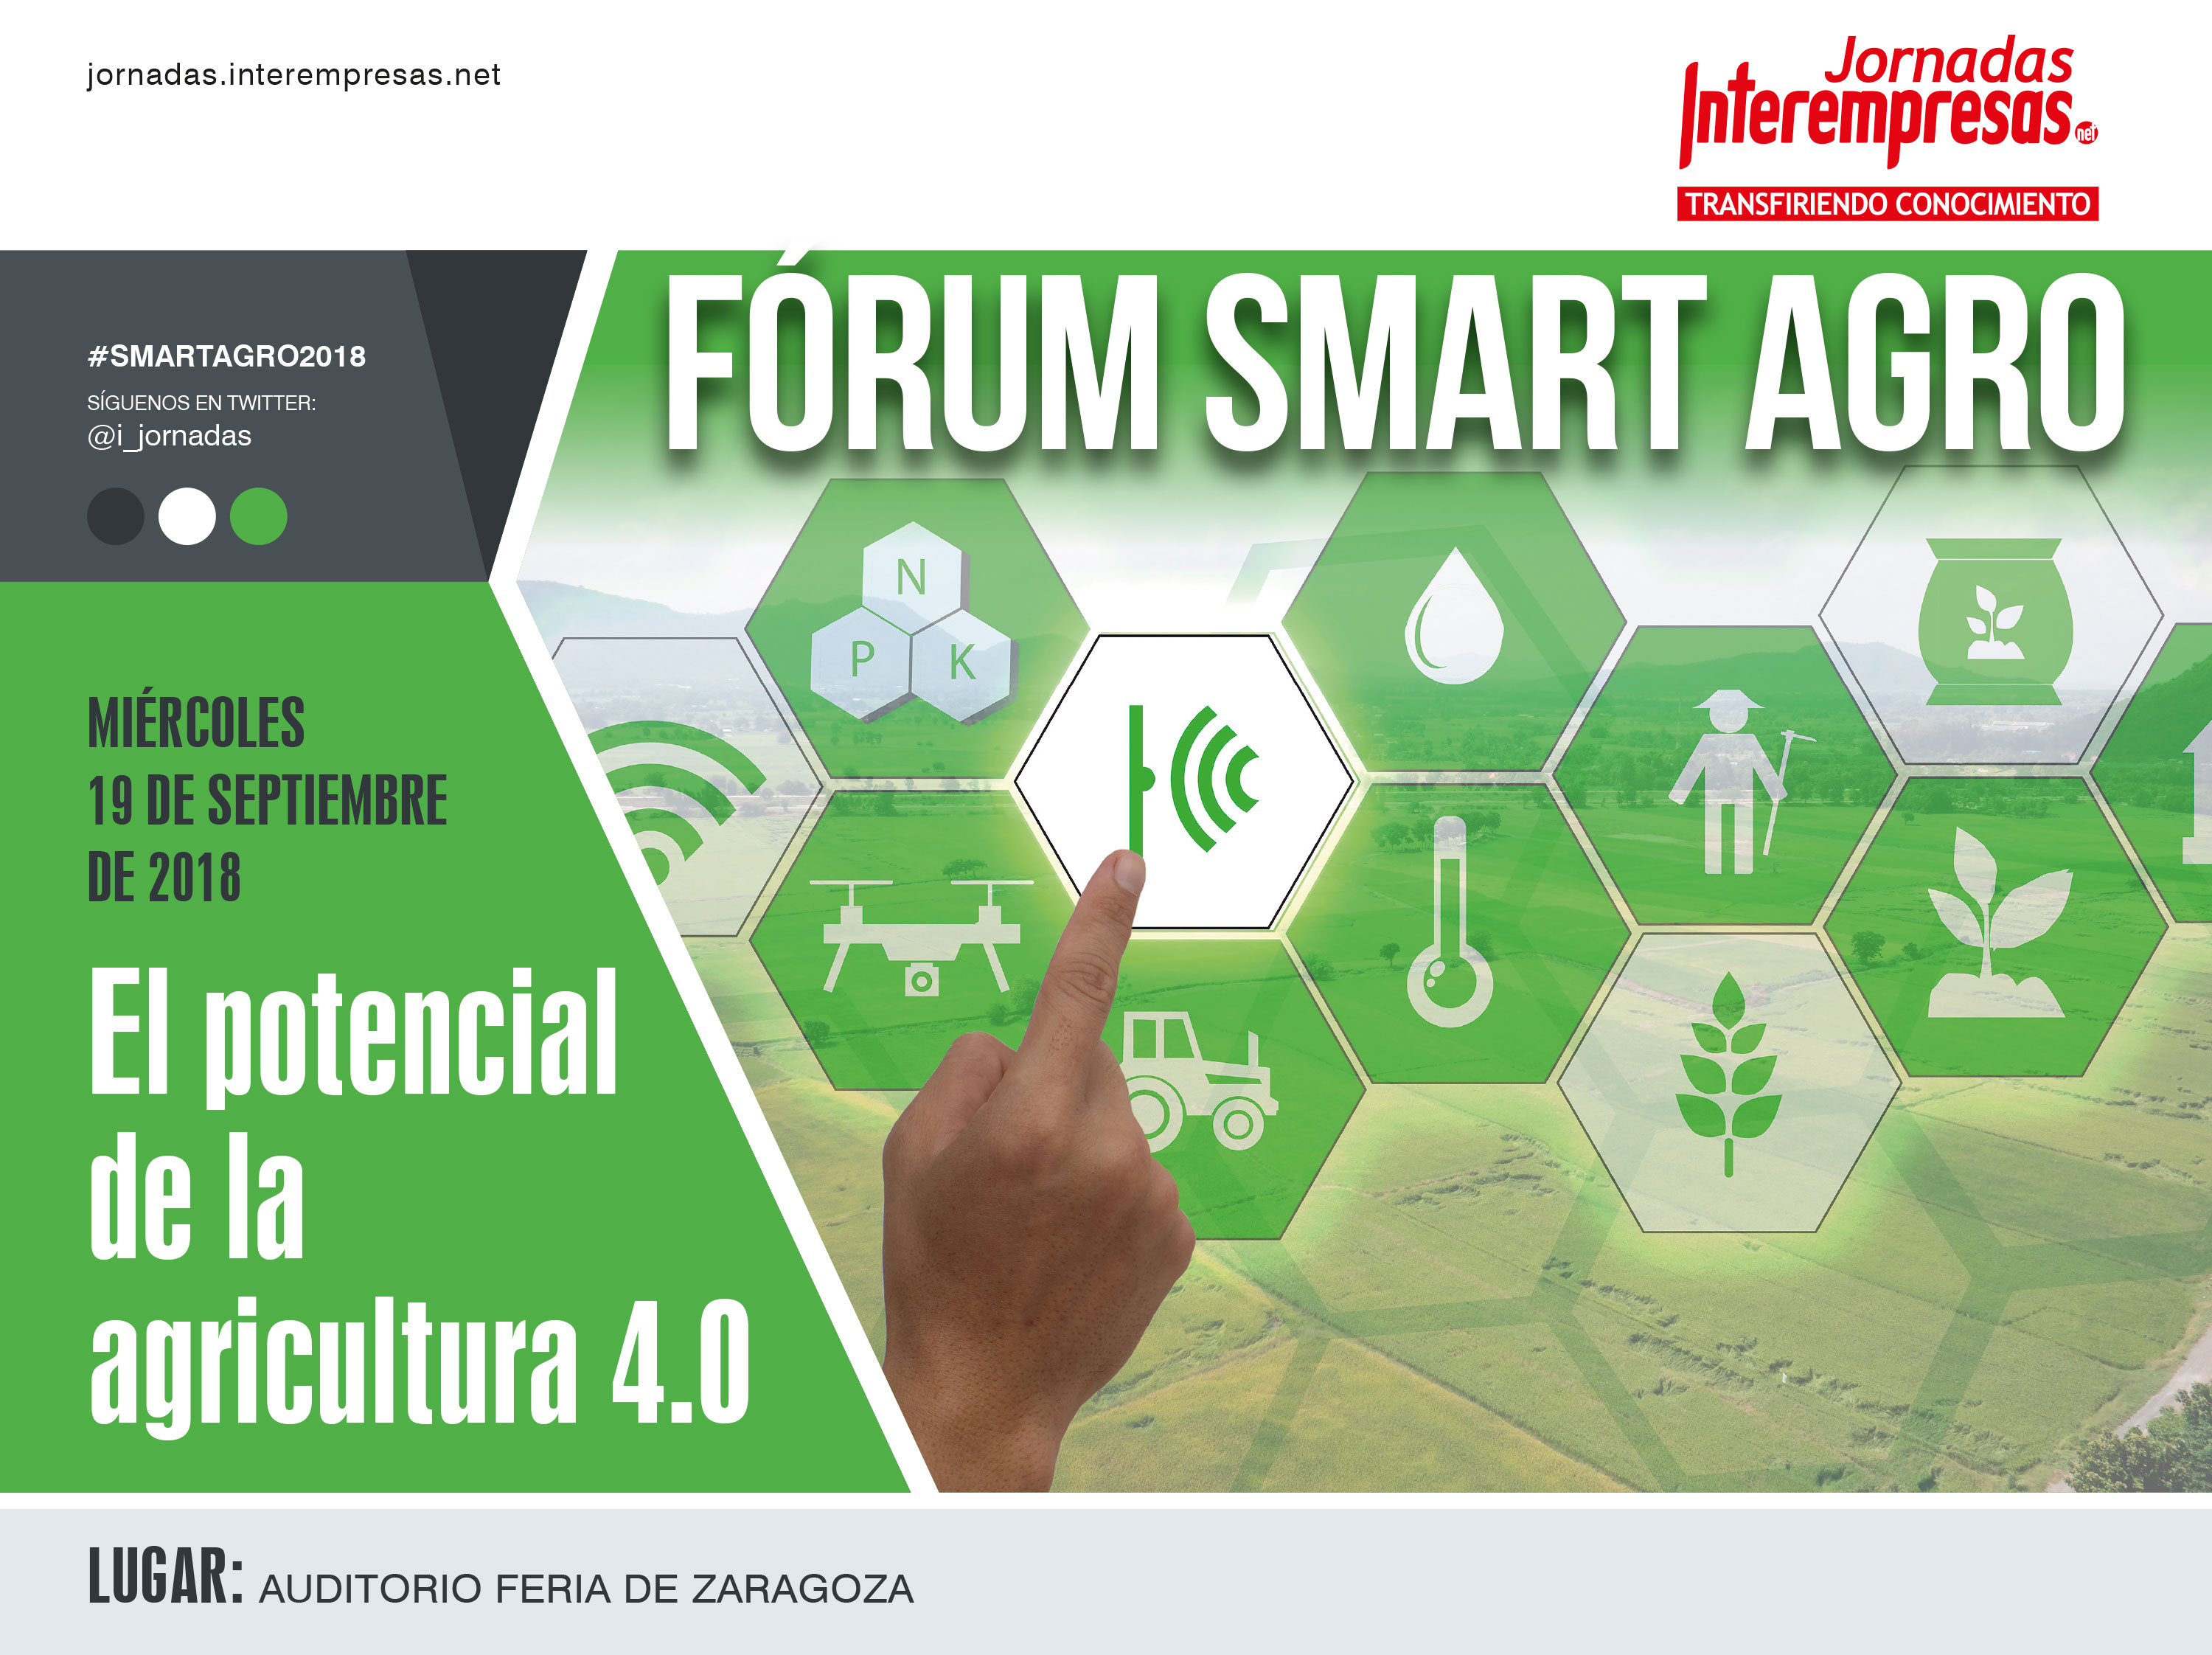 cartel de Fórum Smart Agro 2018